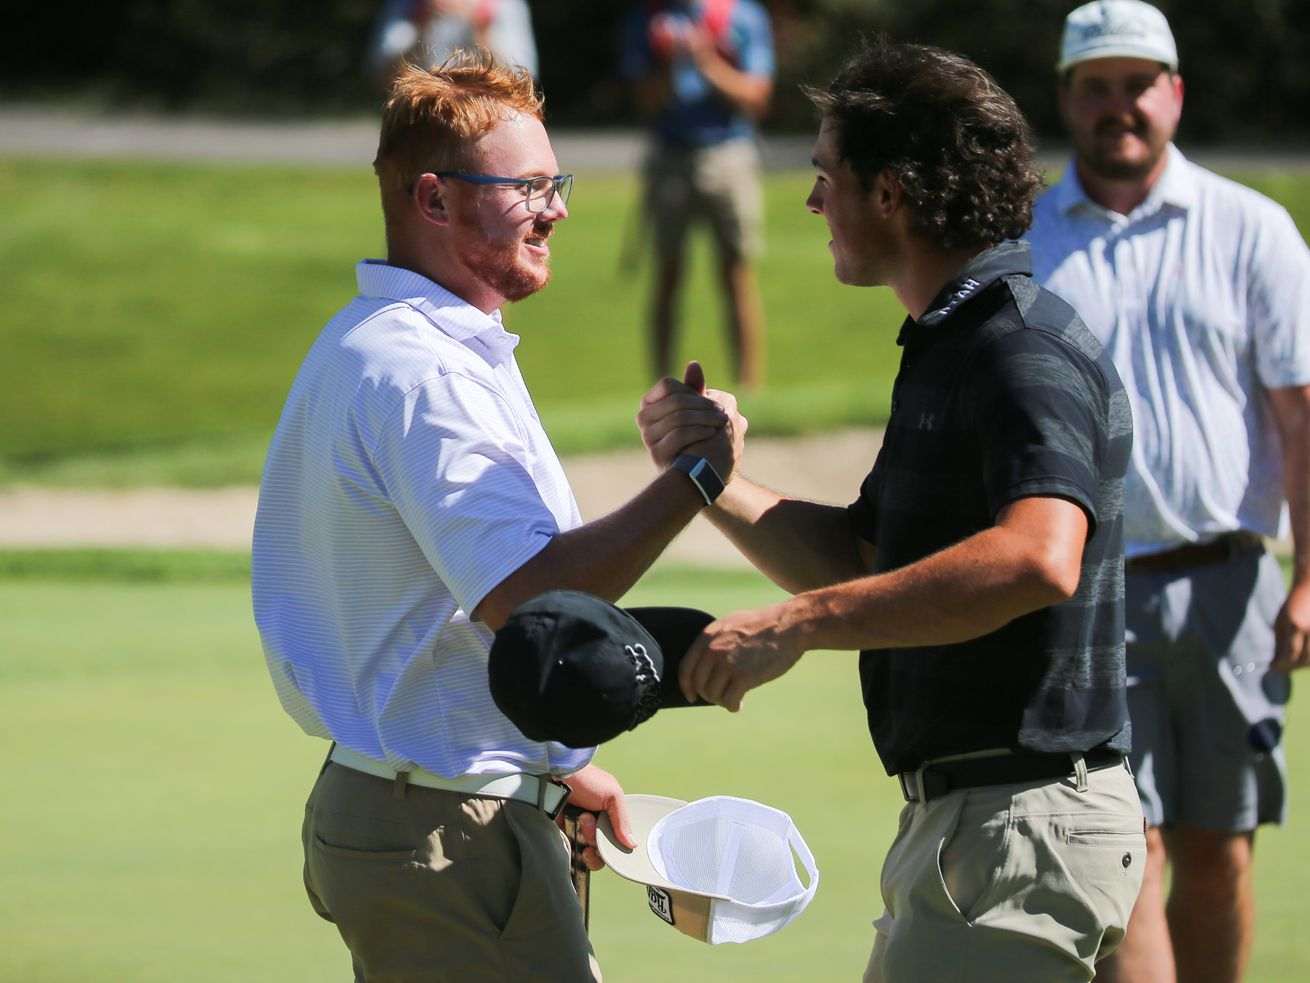 Mitchell Schow, left, is congratulated by Blake Tomlinson after the Utah State Amateur finals at Jeremy Ranch Golf & Country Club in Park City on Saturday, Sept. 5, 2020. Schow won the tournament.